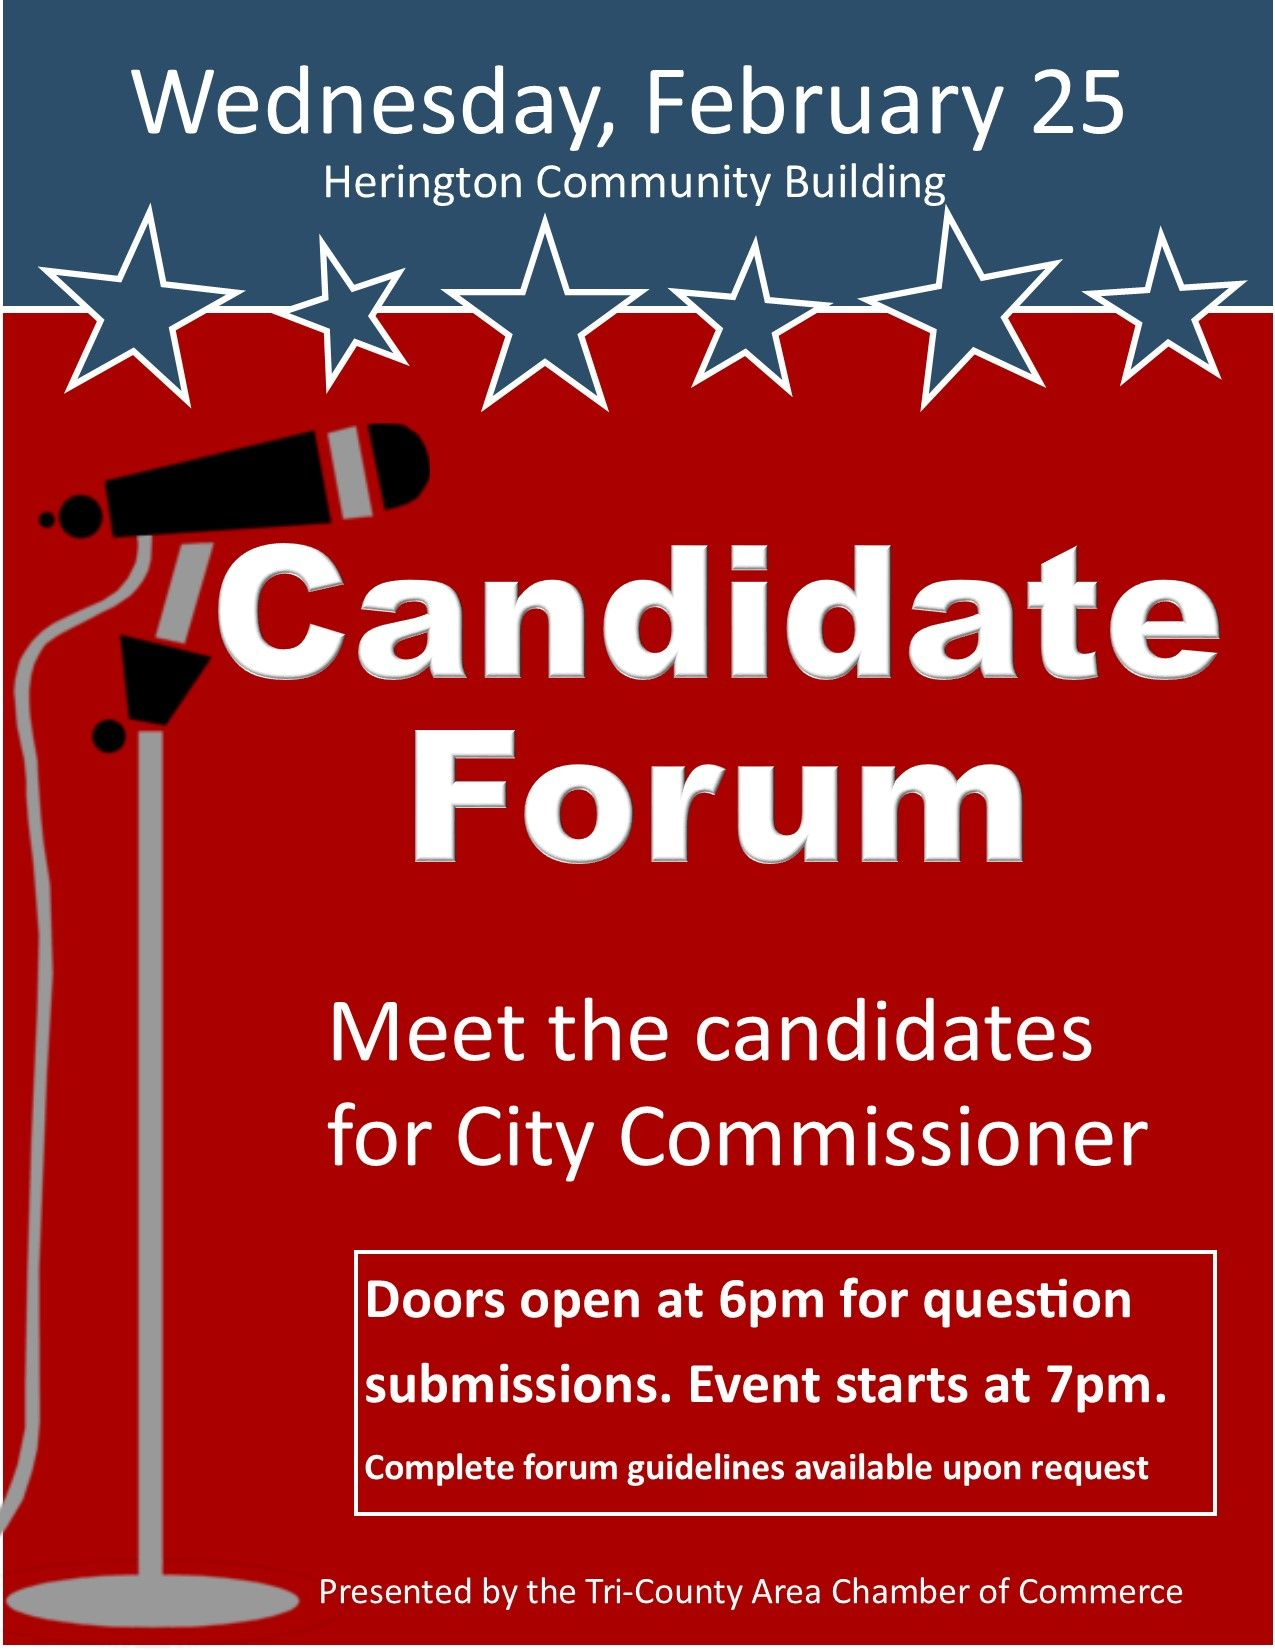 tbnewswatch meet the candidates flyer